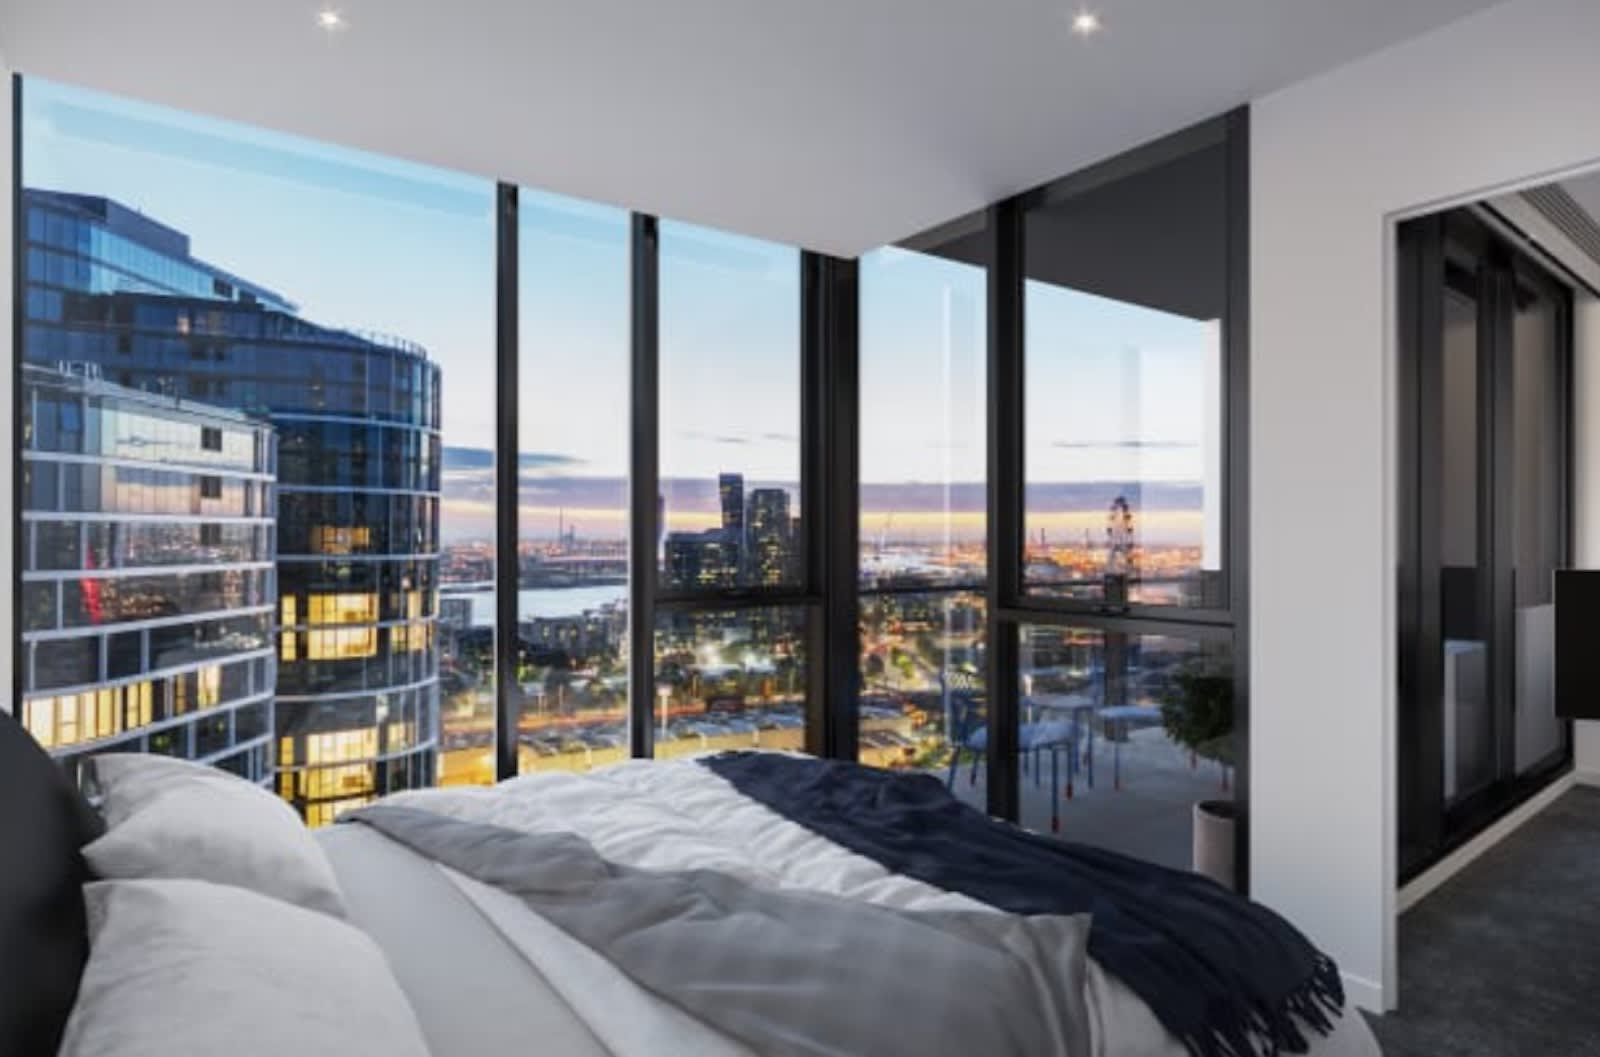 Developer Central equity offering $73,000 in savings at West Melbourne apartment development Parkhill